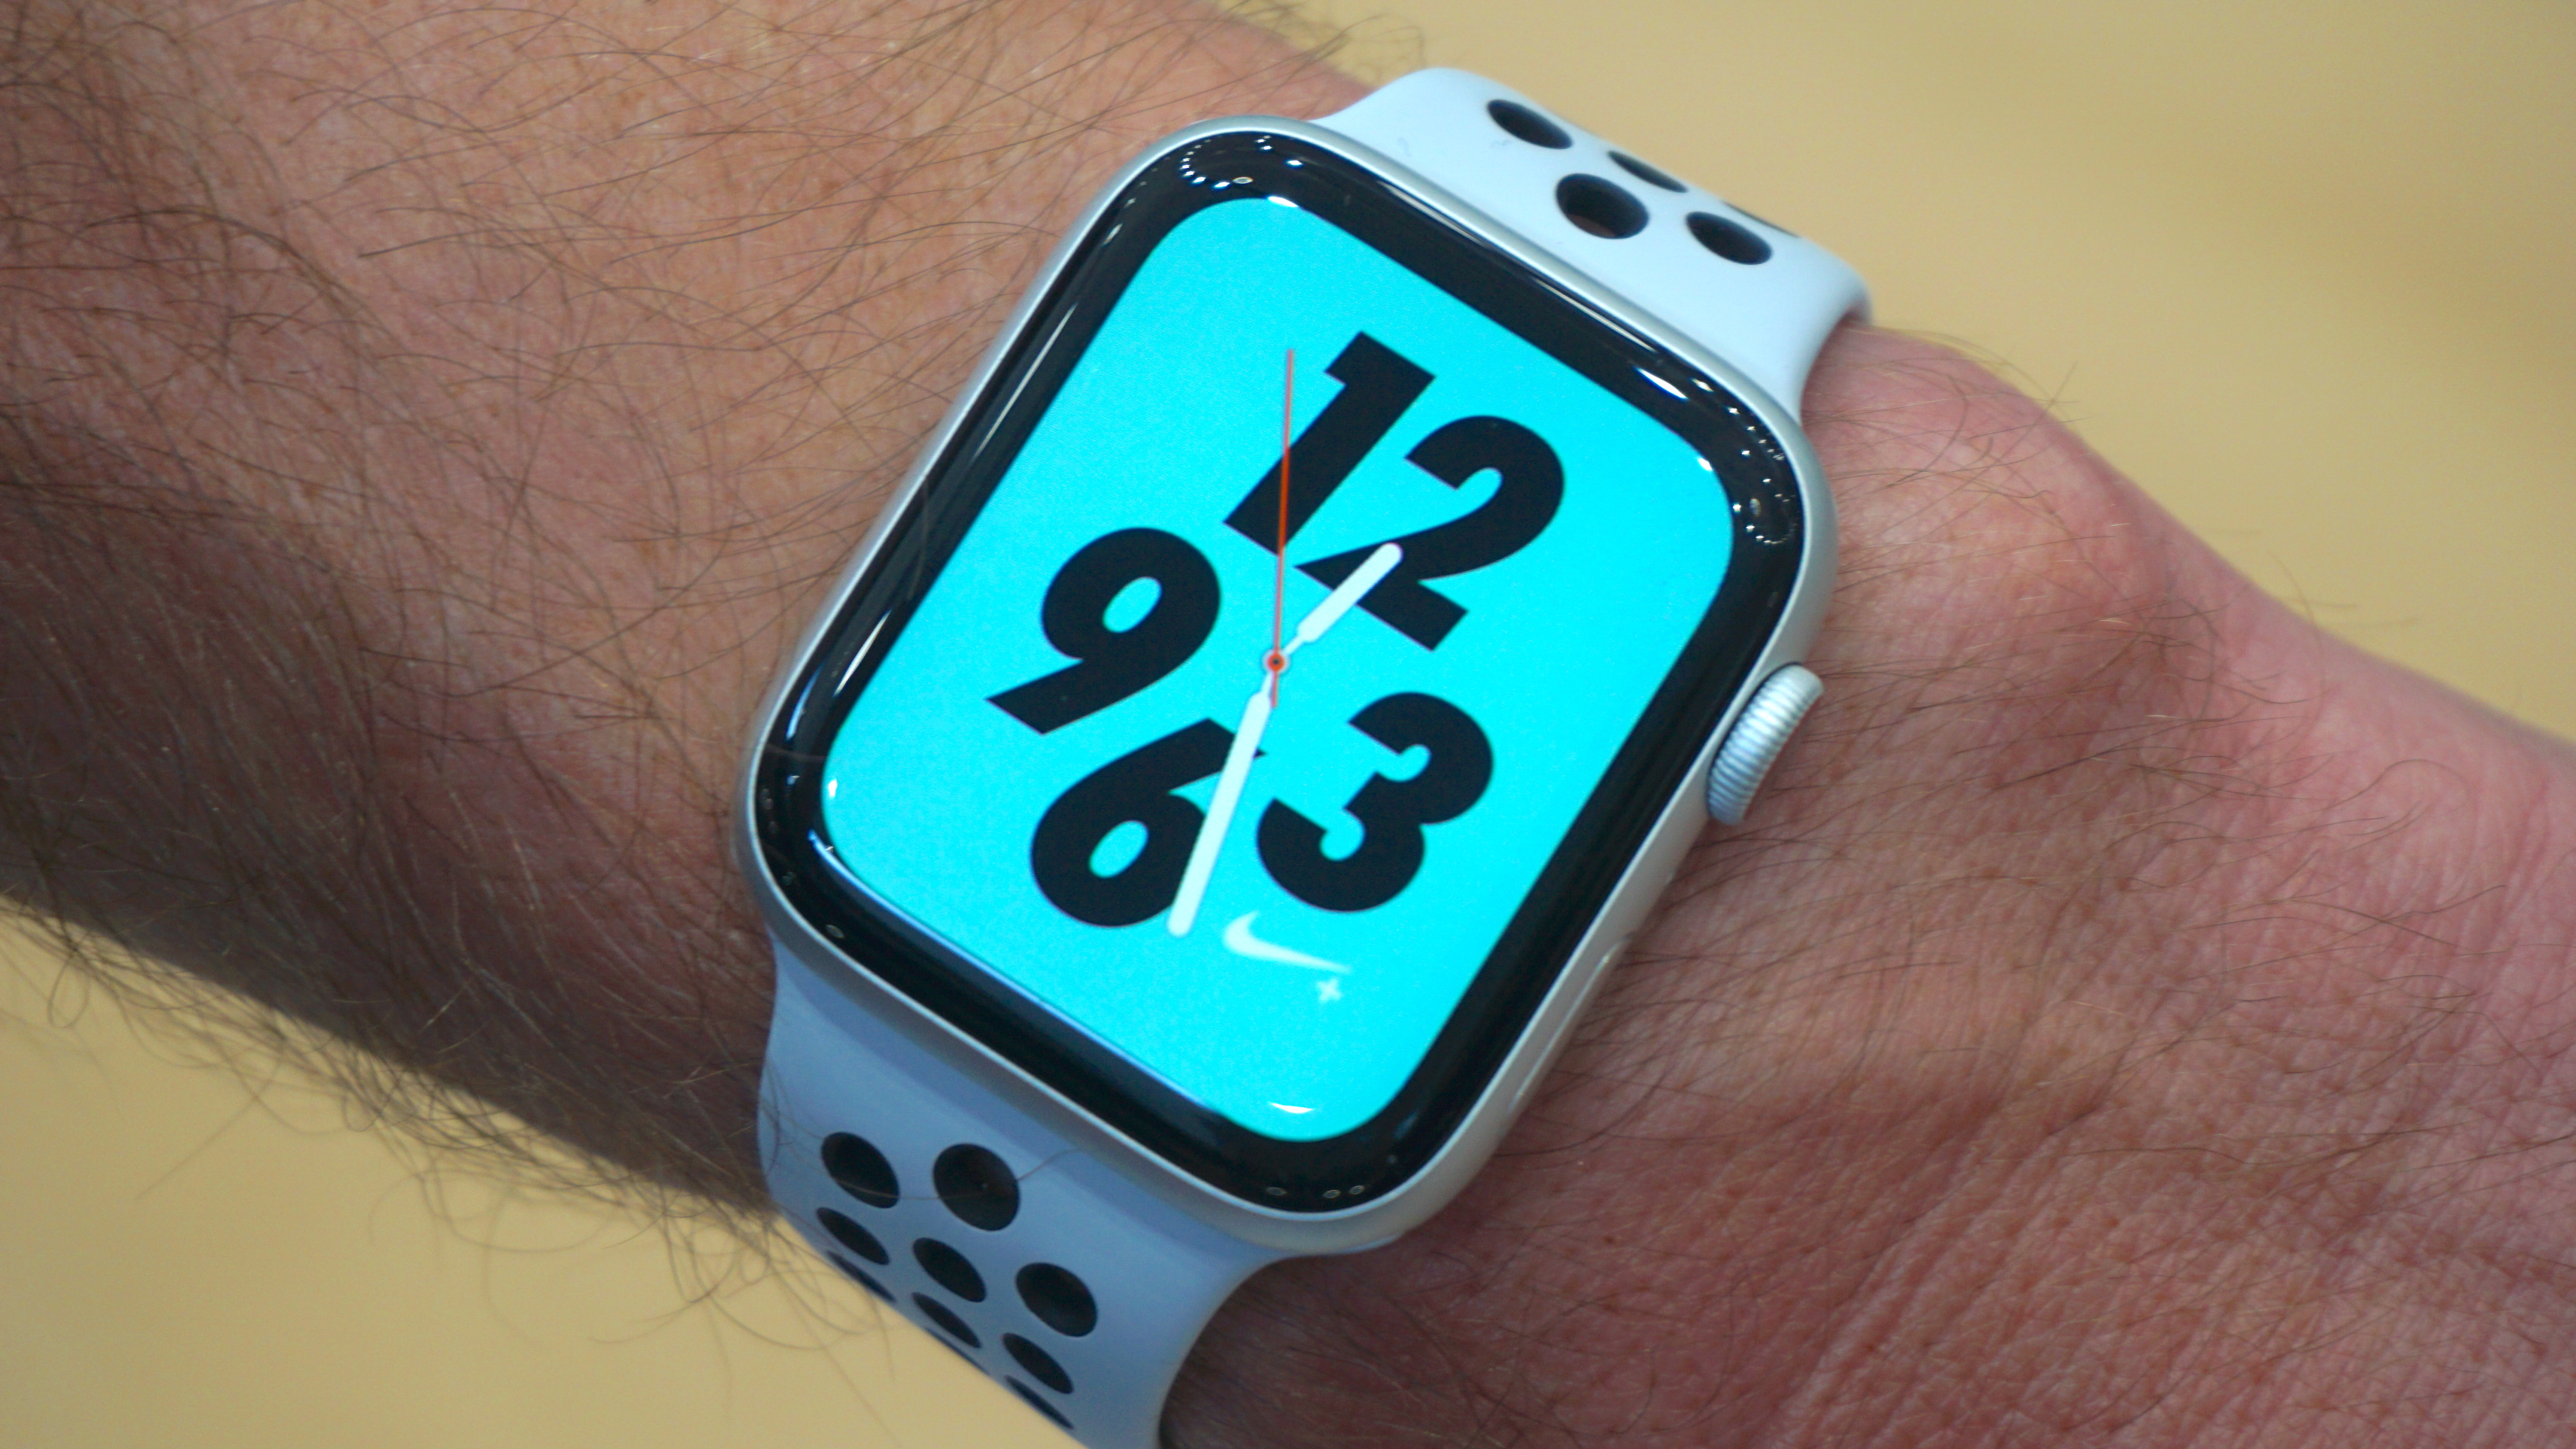 There's a larger Nike+ Watch face too, which comes with the Nike+ Watch4 variant.